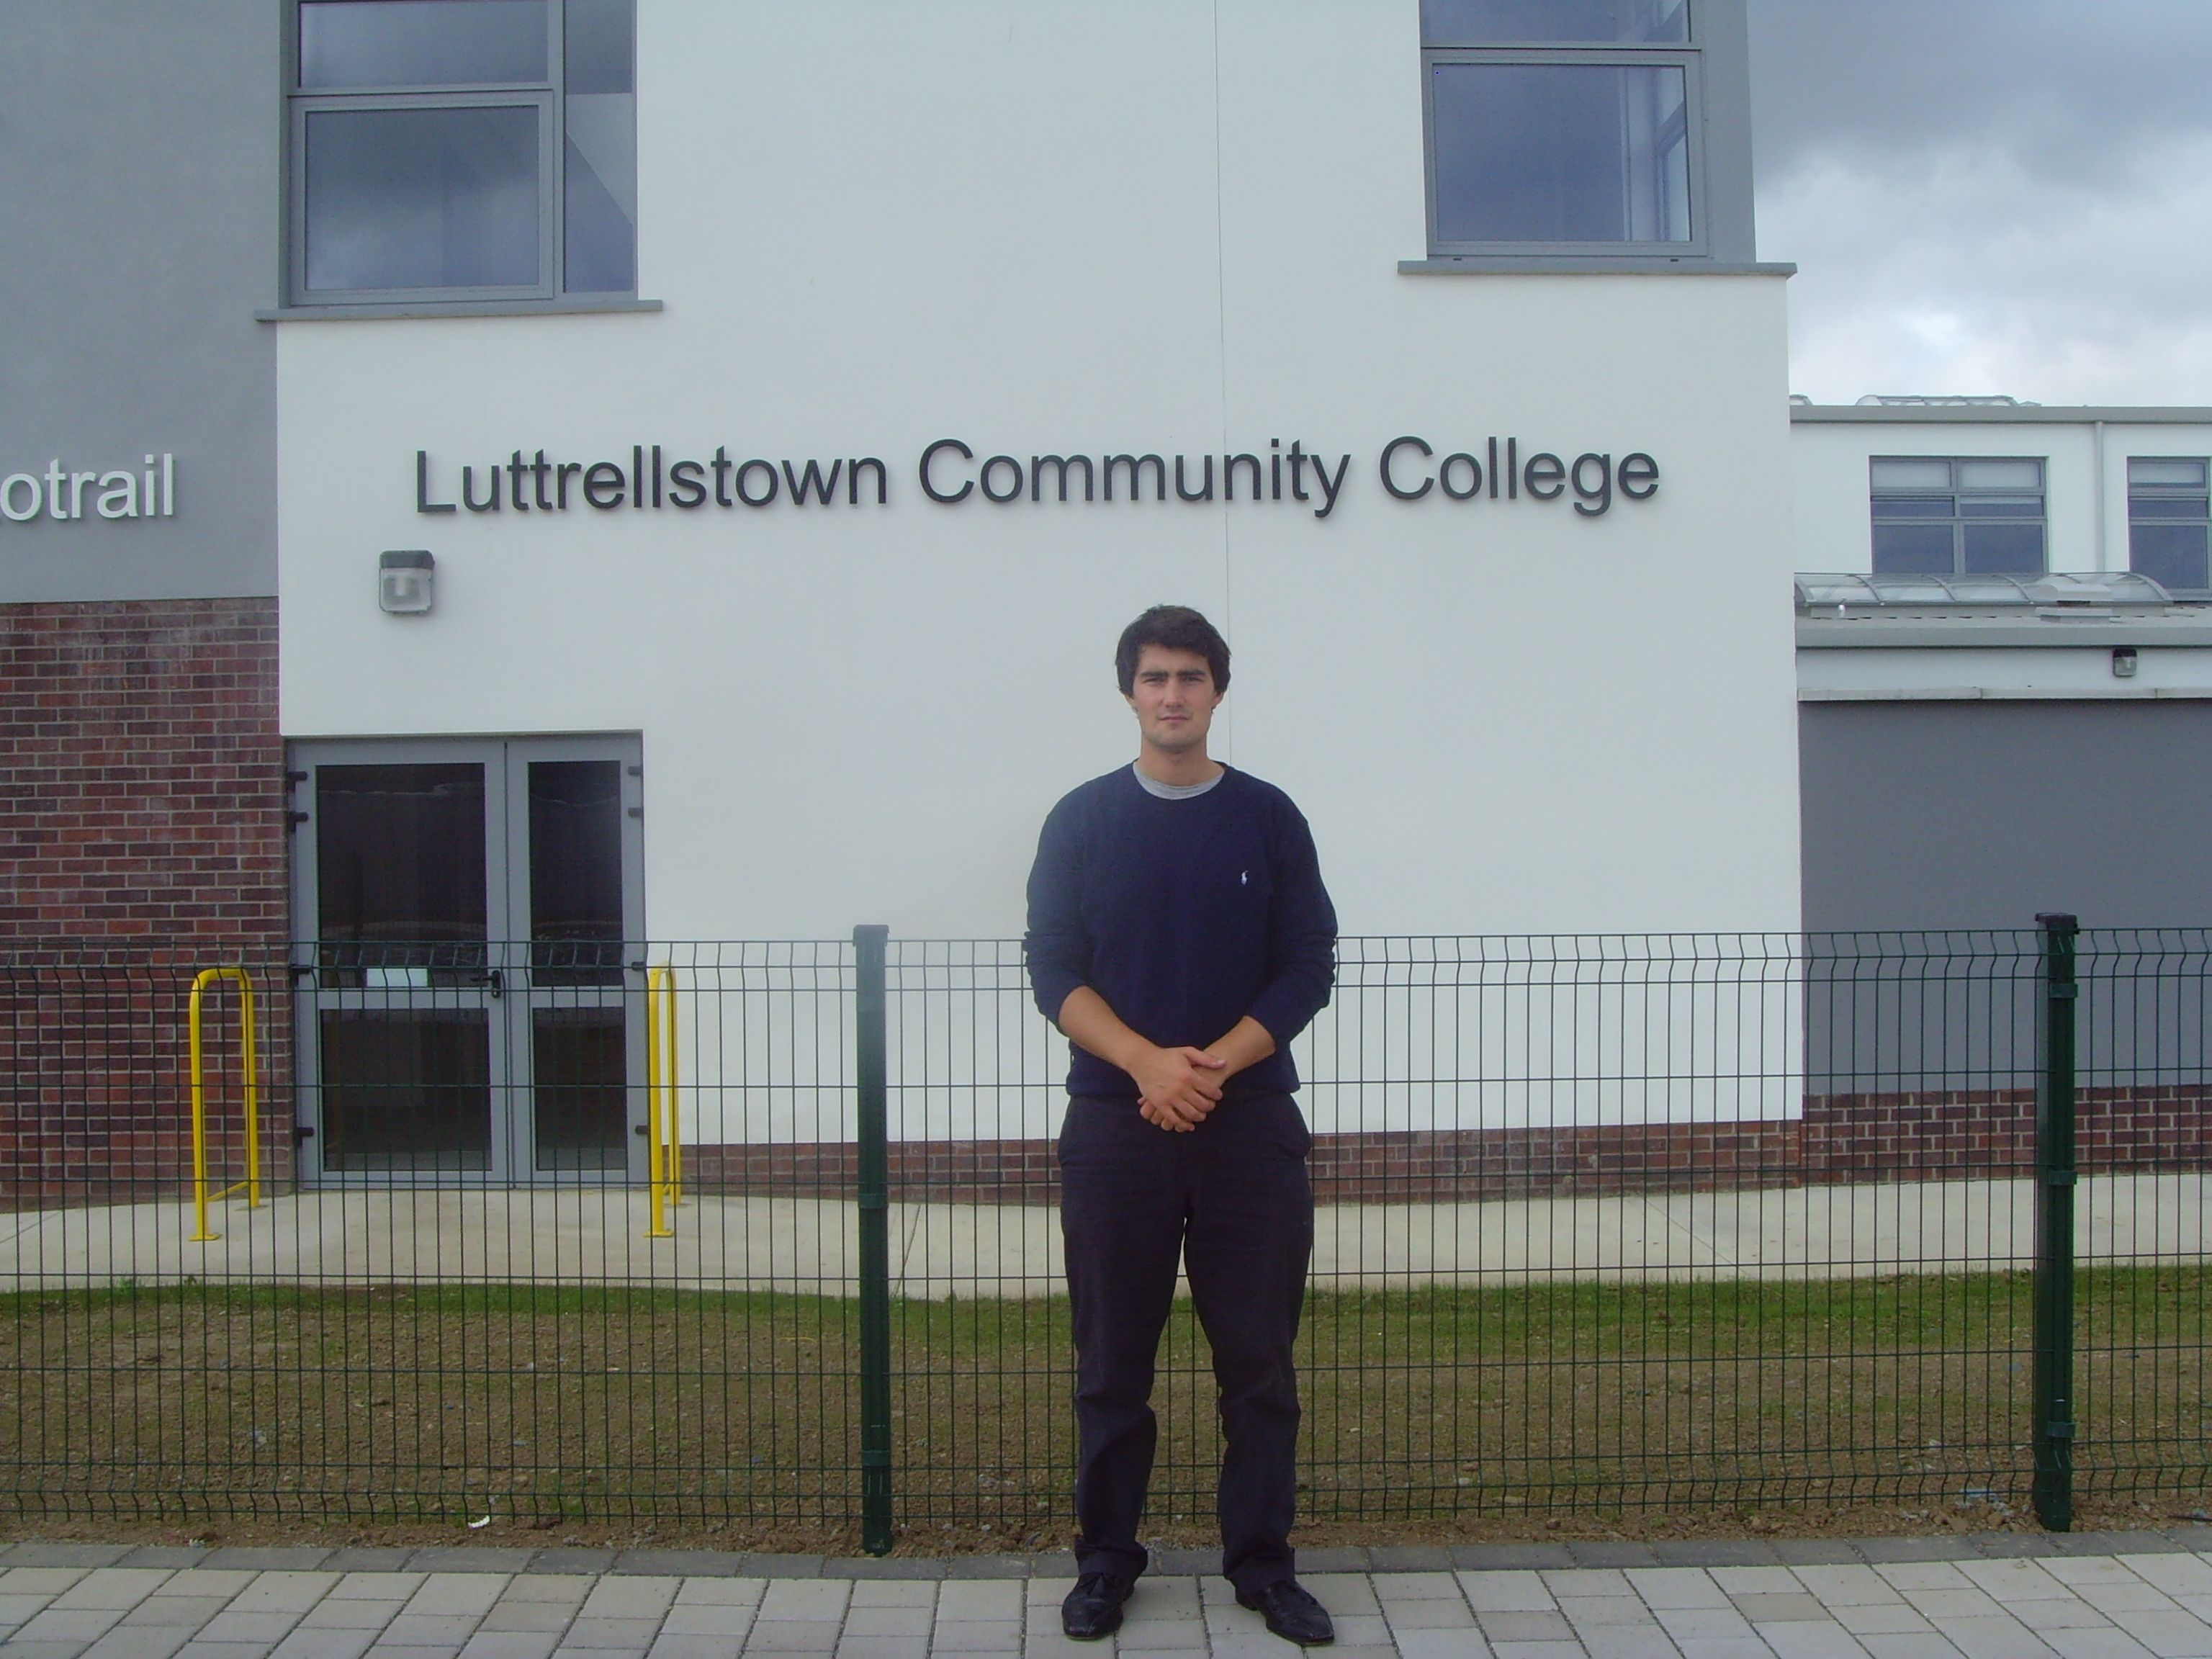 Jack Chambers outside Luttrelstown Community College